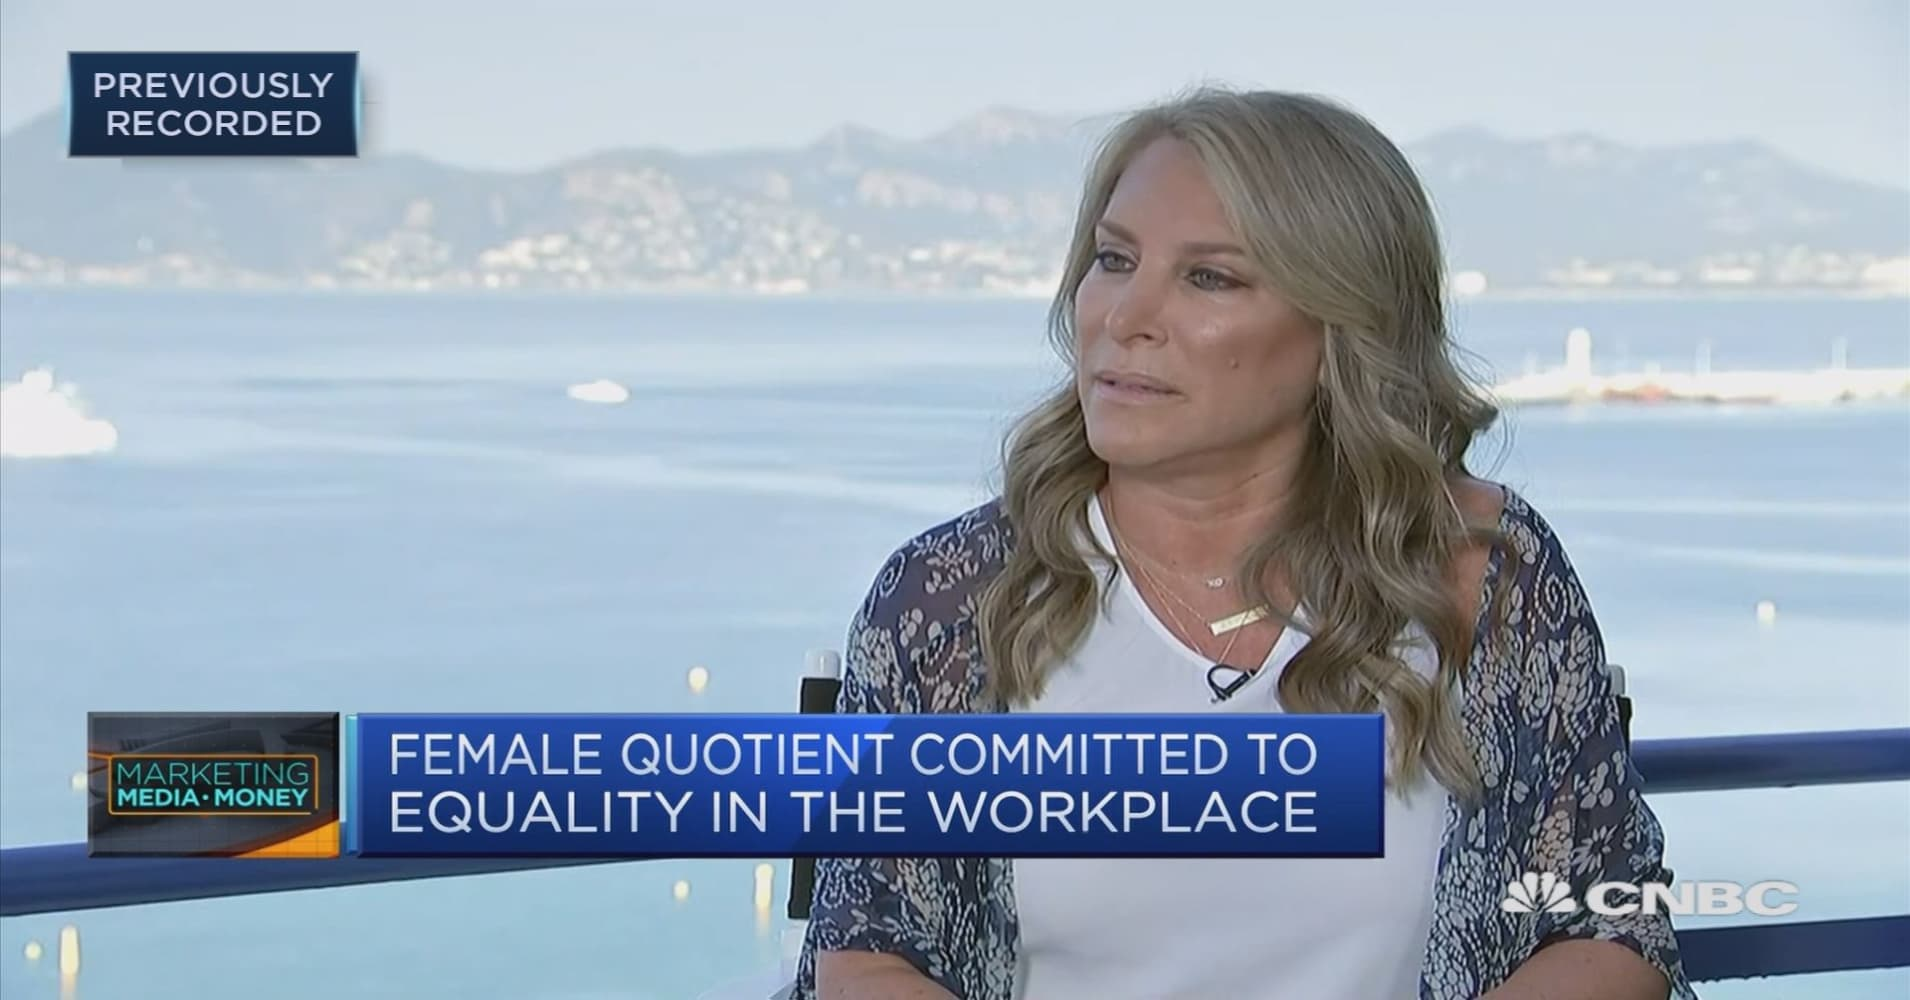 The Female Quotient CEO: Change happens when women stand together